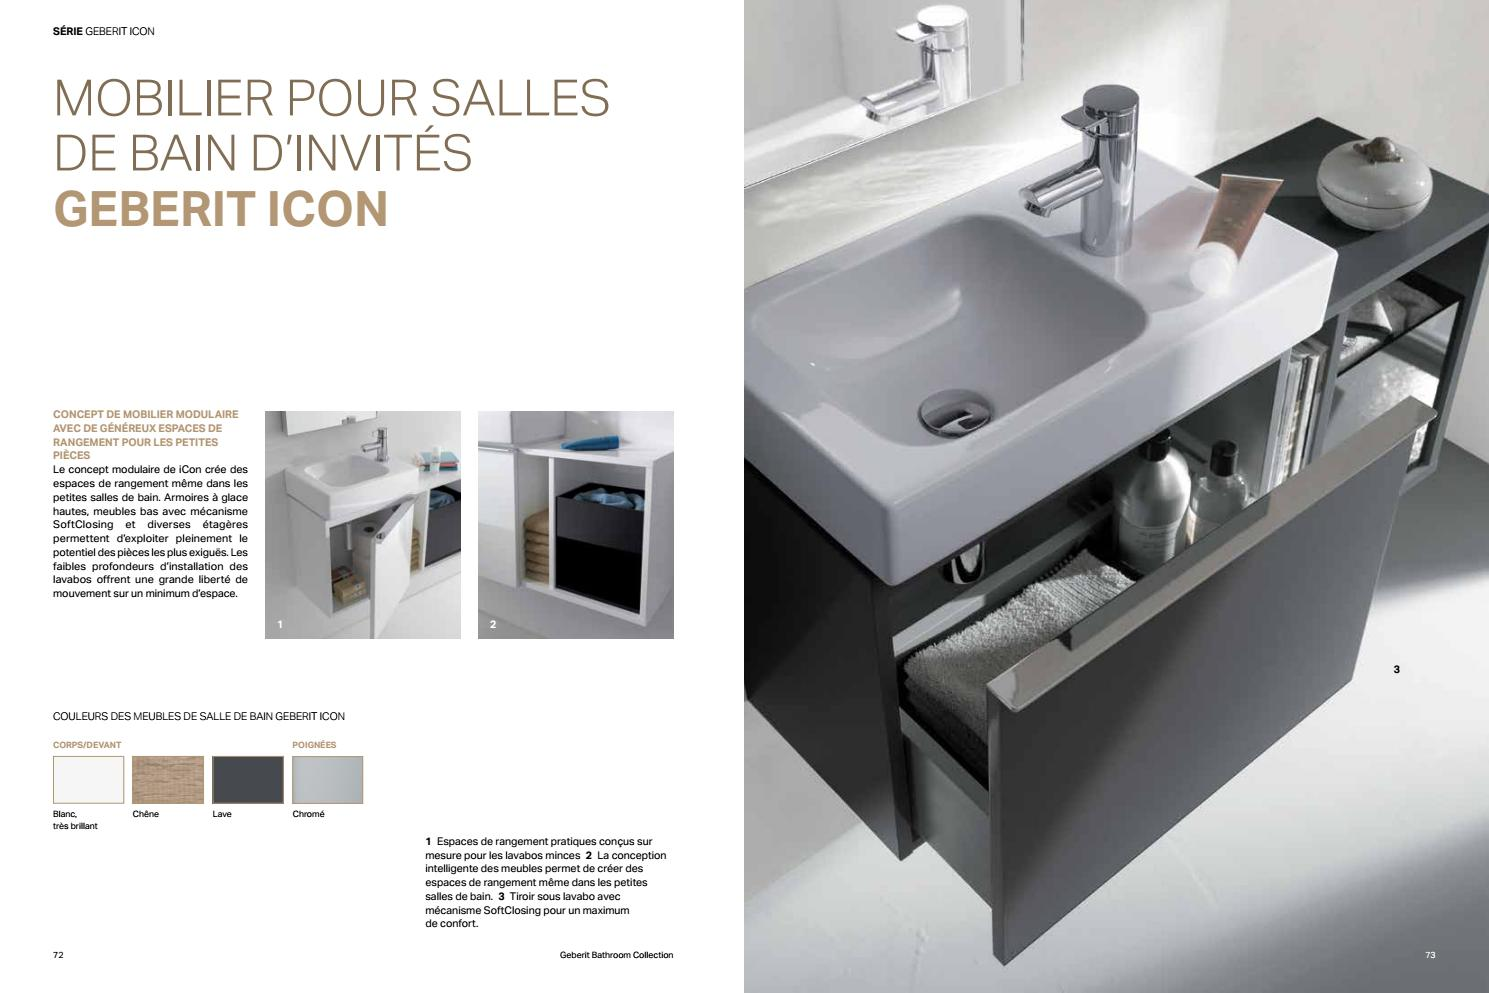 Pdf fr geberit bathroom collection by TOPHOTELSUPPLIER - issuu